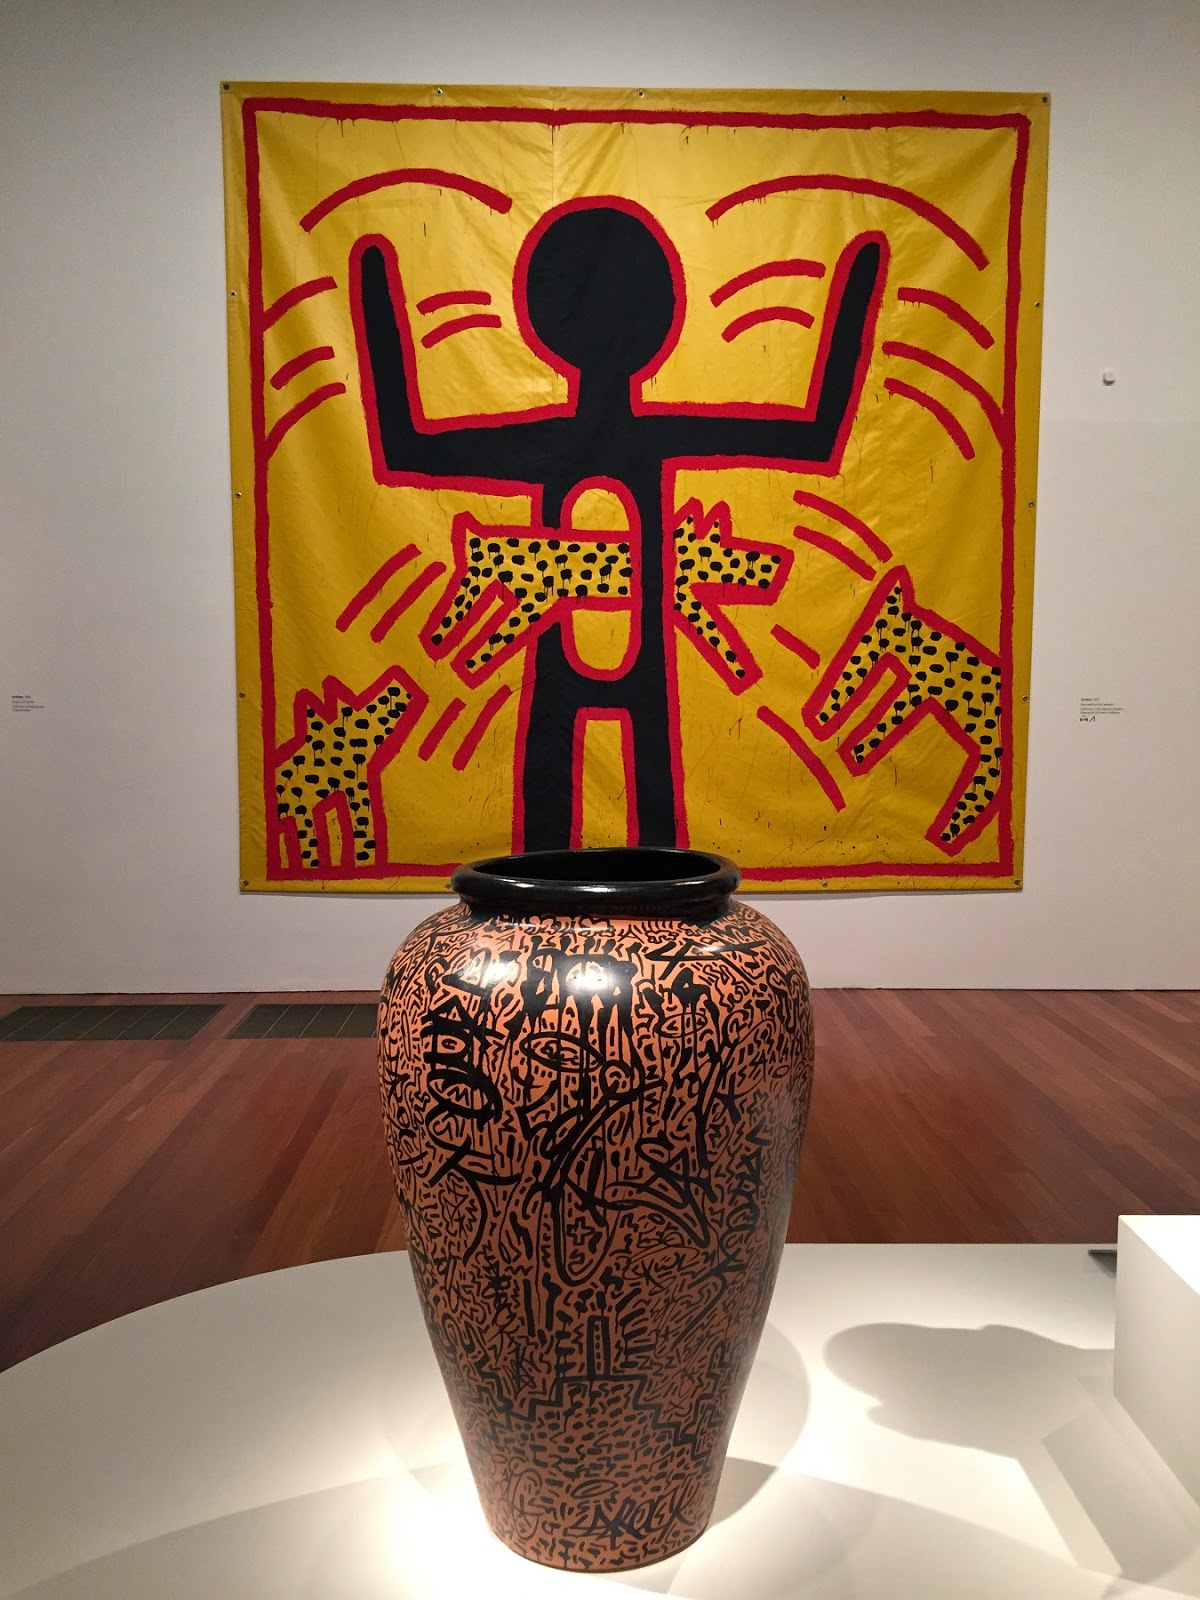 Oh by the way keith haring at the de young as i mentioned there is something wonderfully hieroglyphic and primitive about harings lines and he put them on some large vaseswhich feels ethnic and reviewsmspy